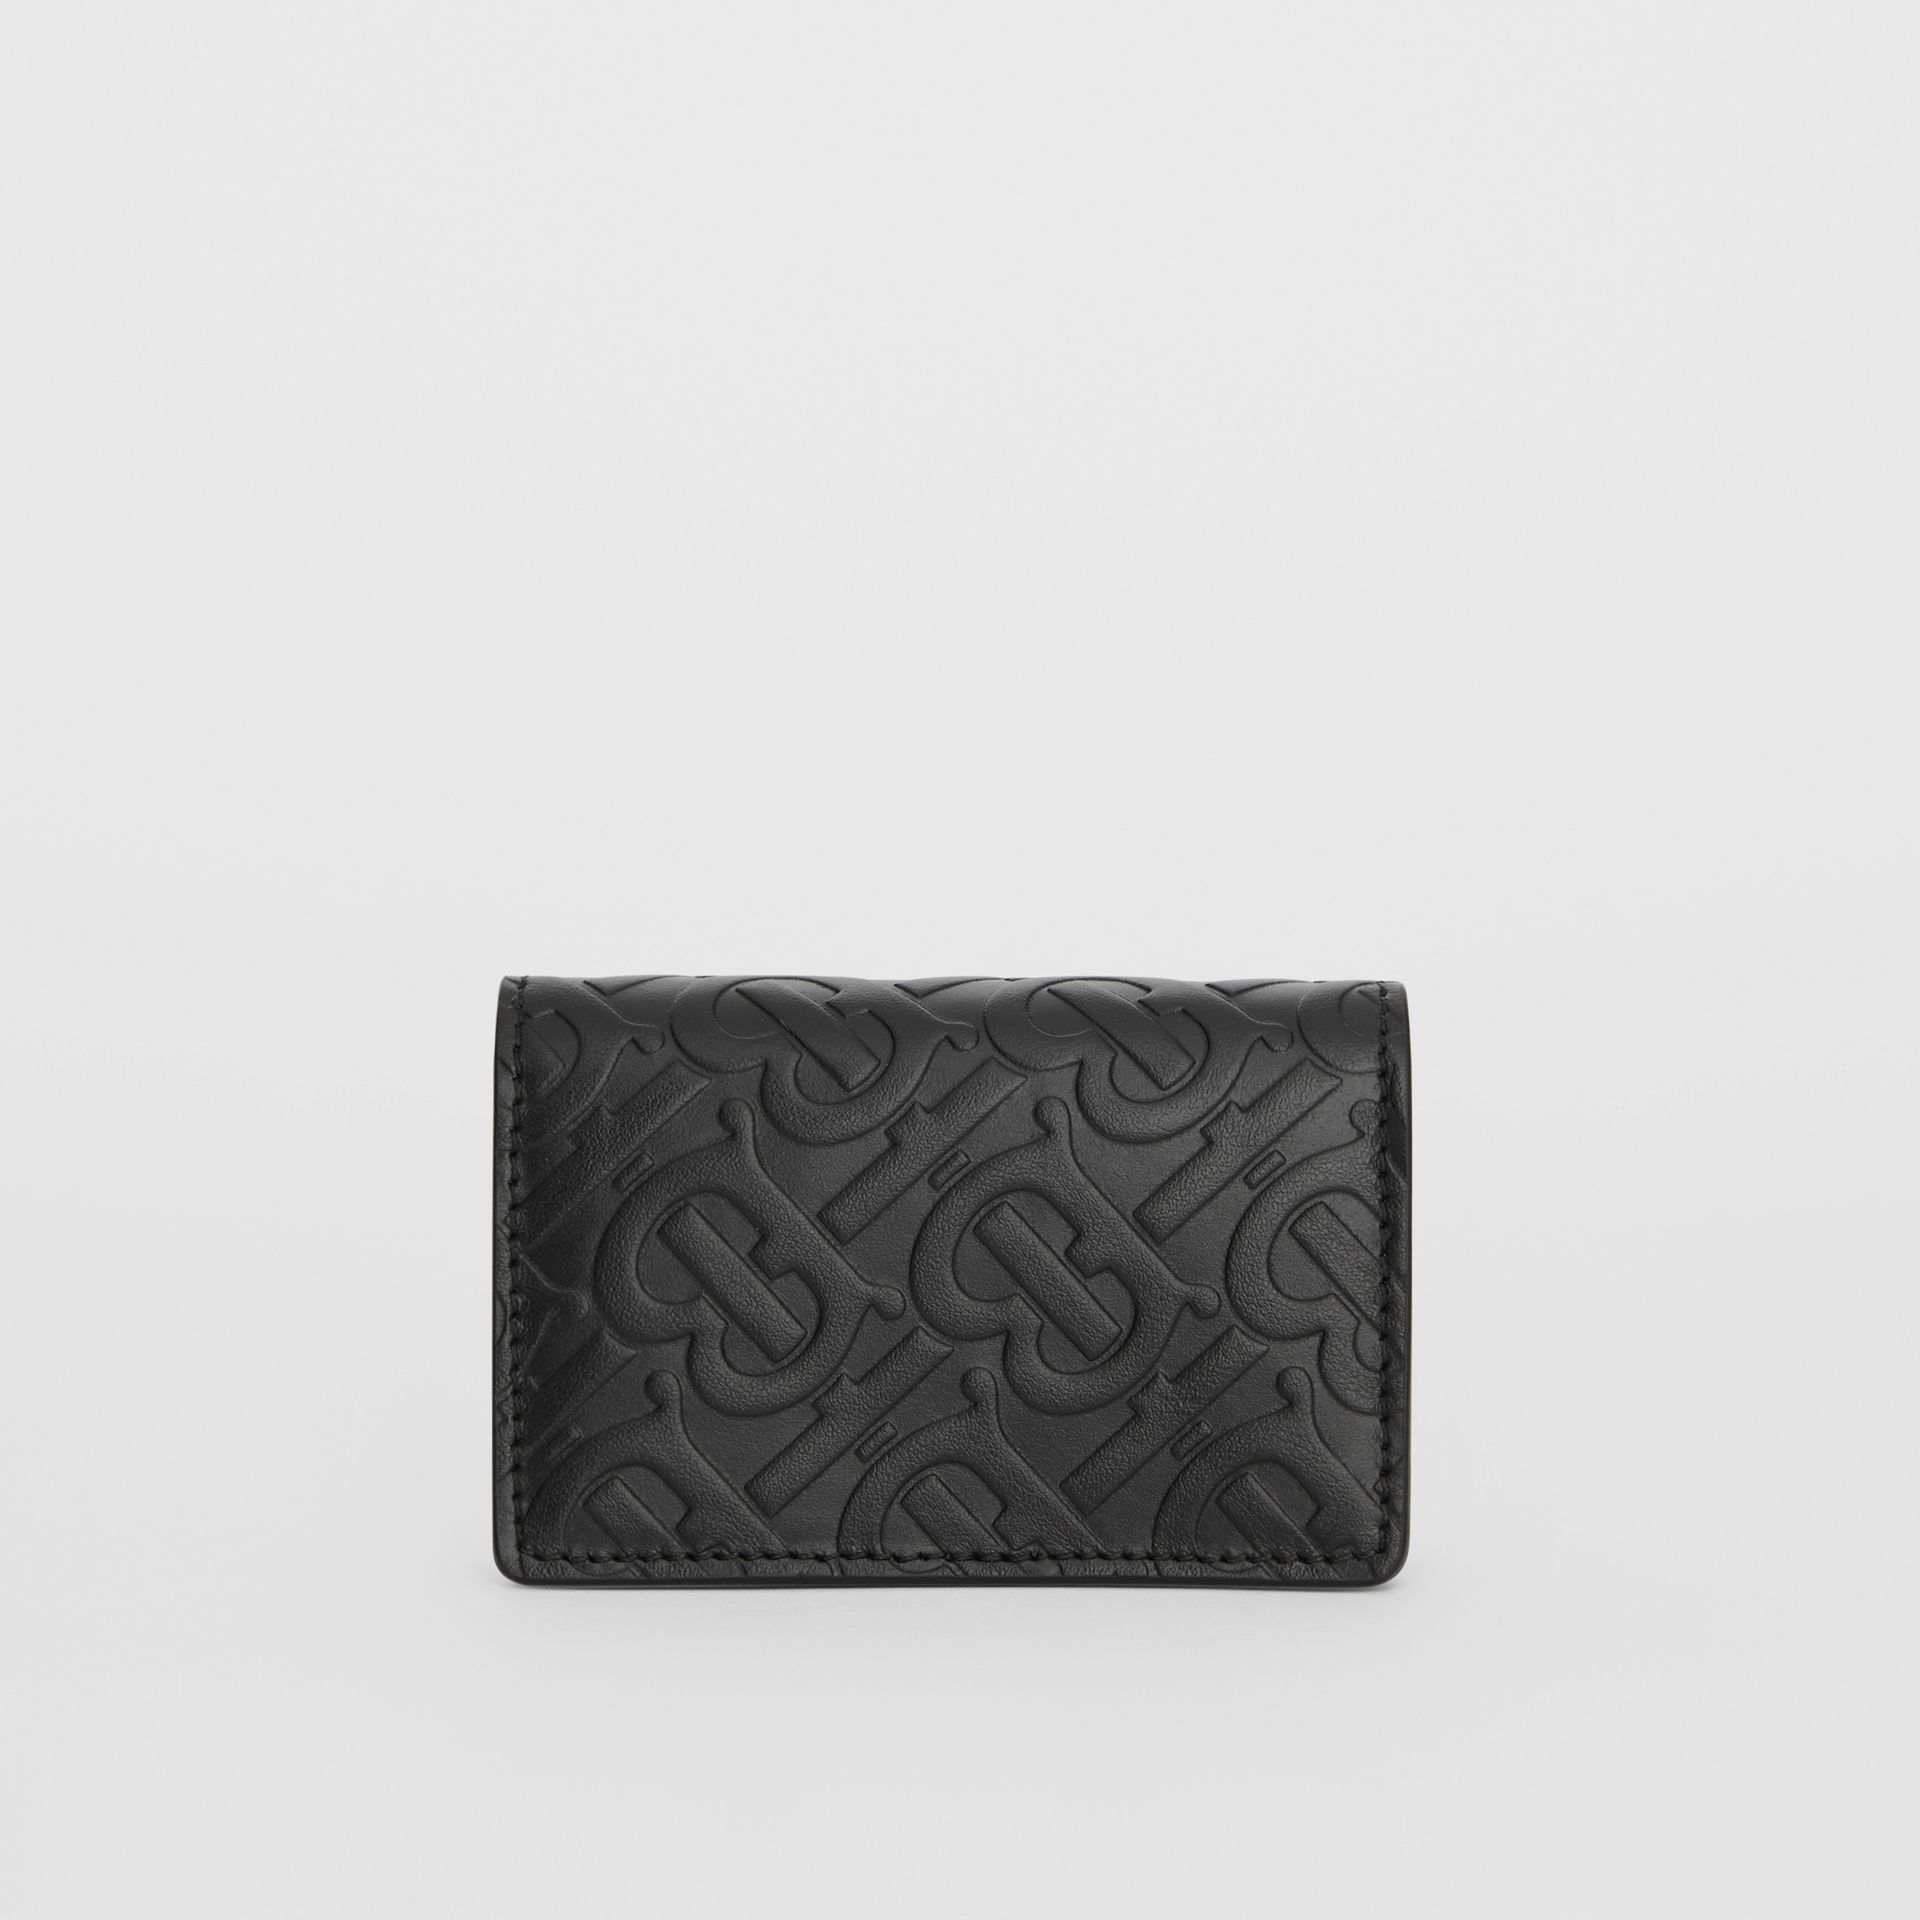 Monogram Leather Card Case in Black - Women | Burberry Singapore - gallery image 4